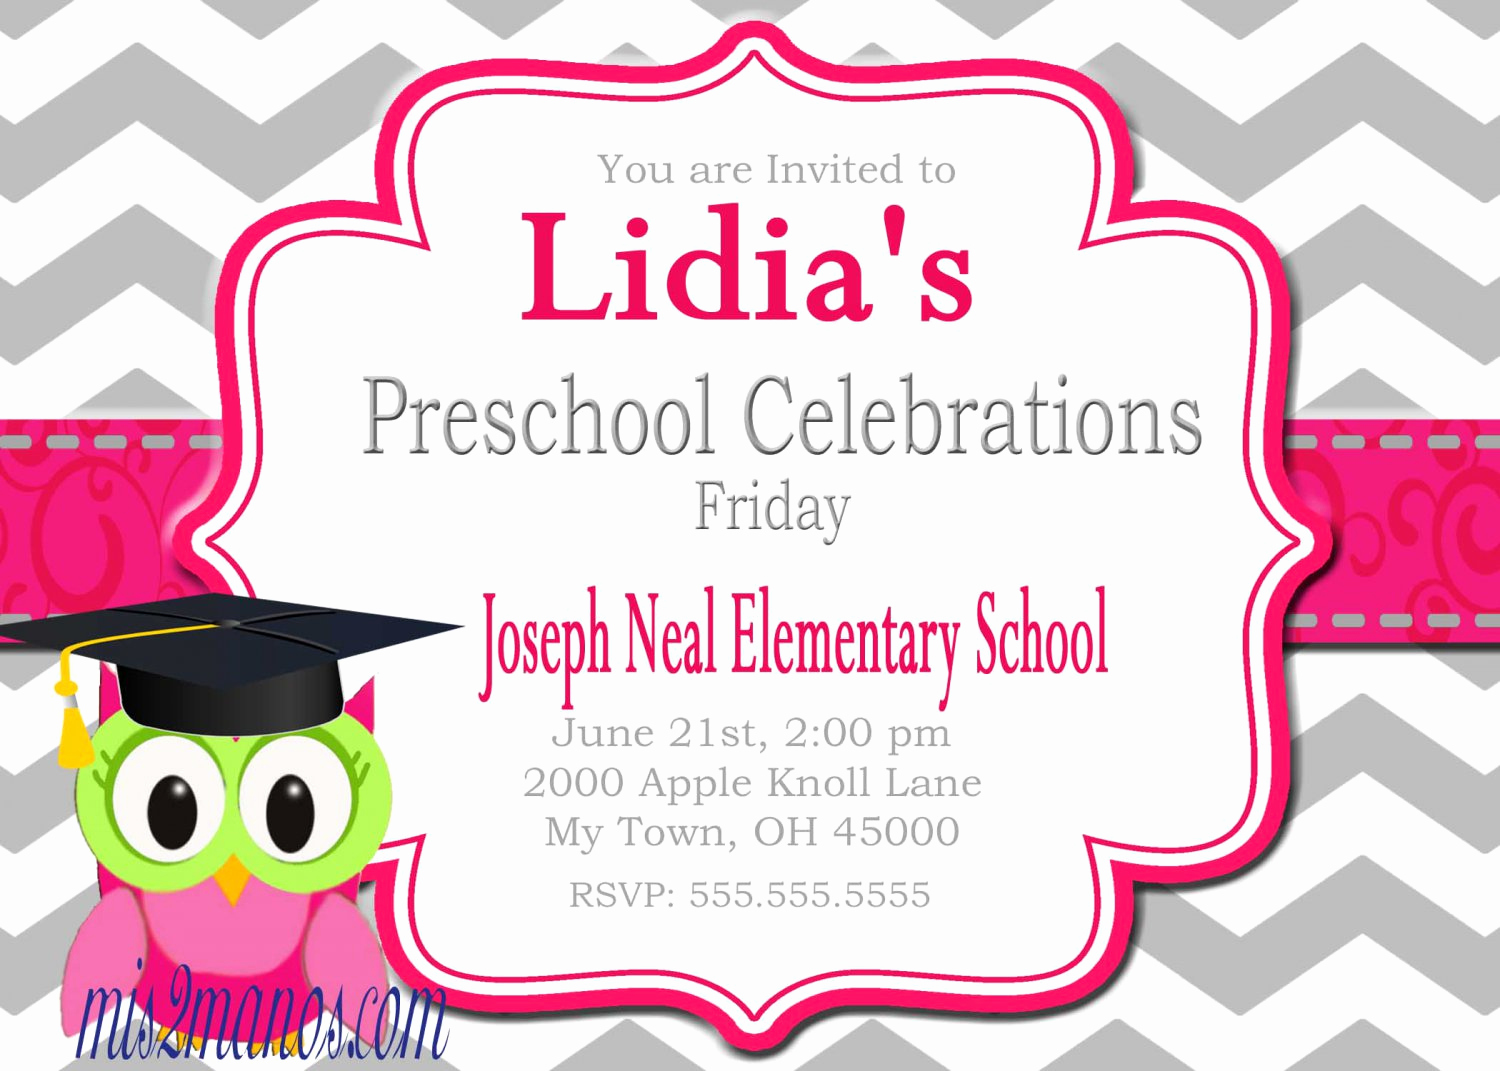 Preschool Graduation Invitation Ideas Luxury Preschool Graduation Invitations Printable Invites